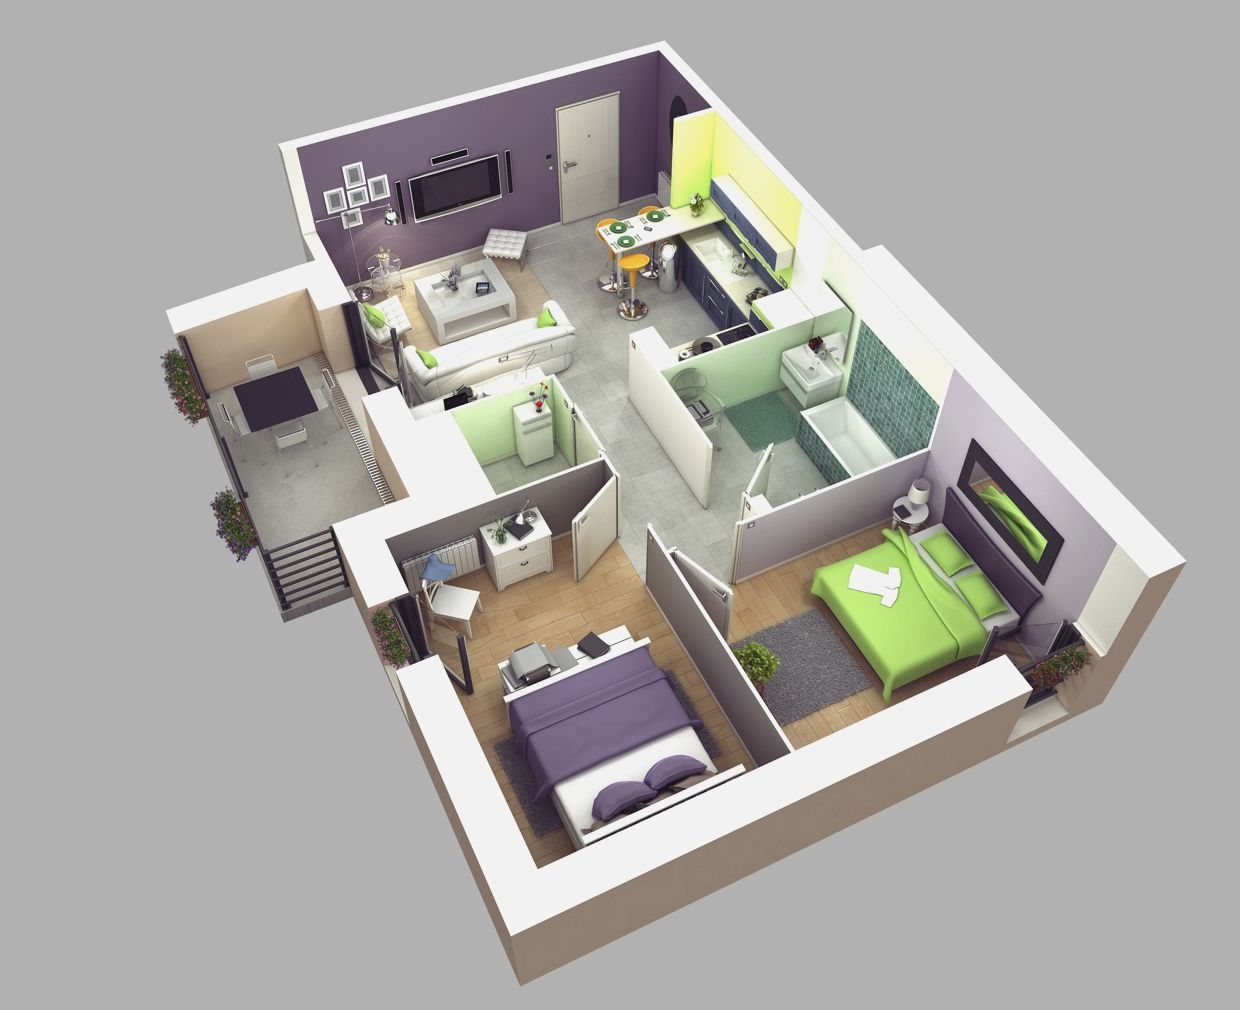 1 bedroom house plans 3d just the two of us apartment for House plans 3 bedroom 1 bathroom